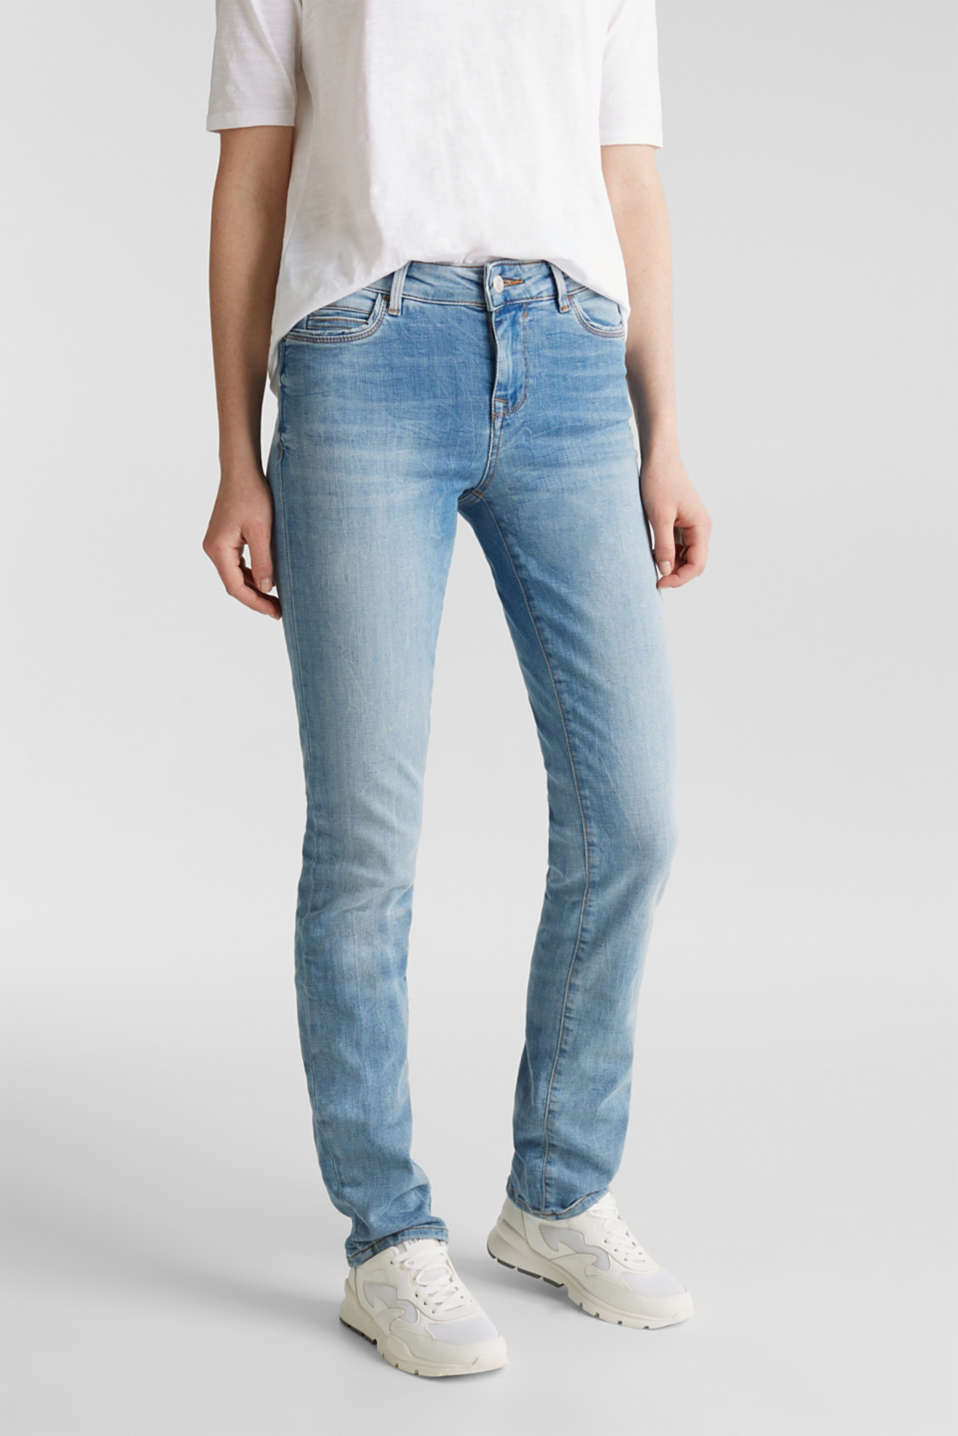 Esprit - Super stretchy jeans in a pale garment wash